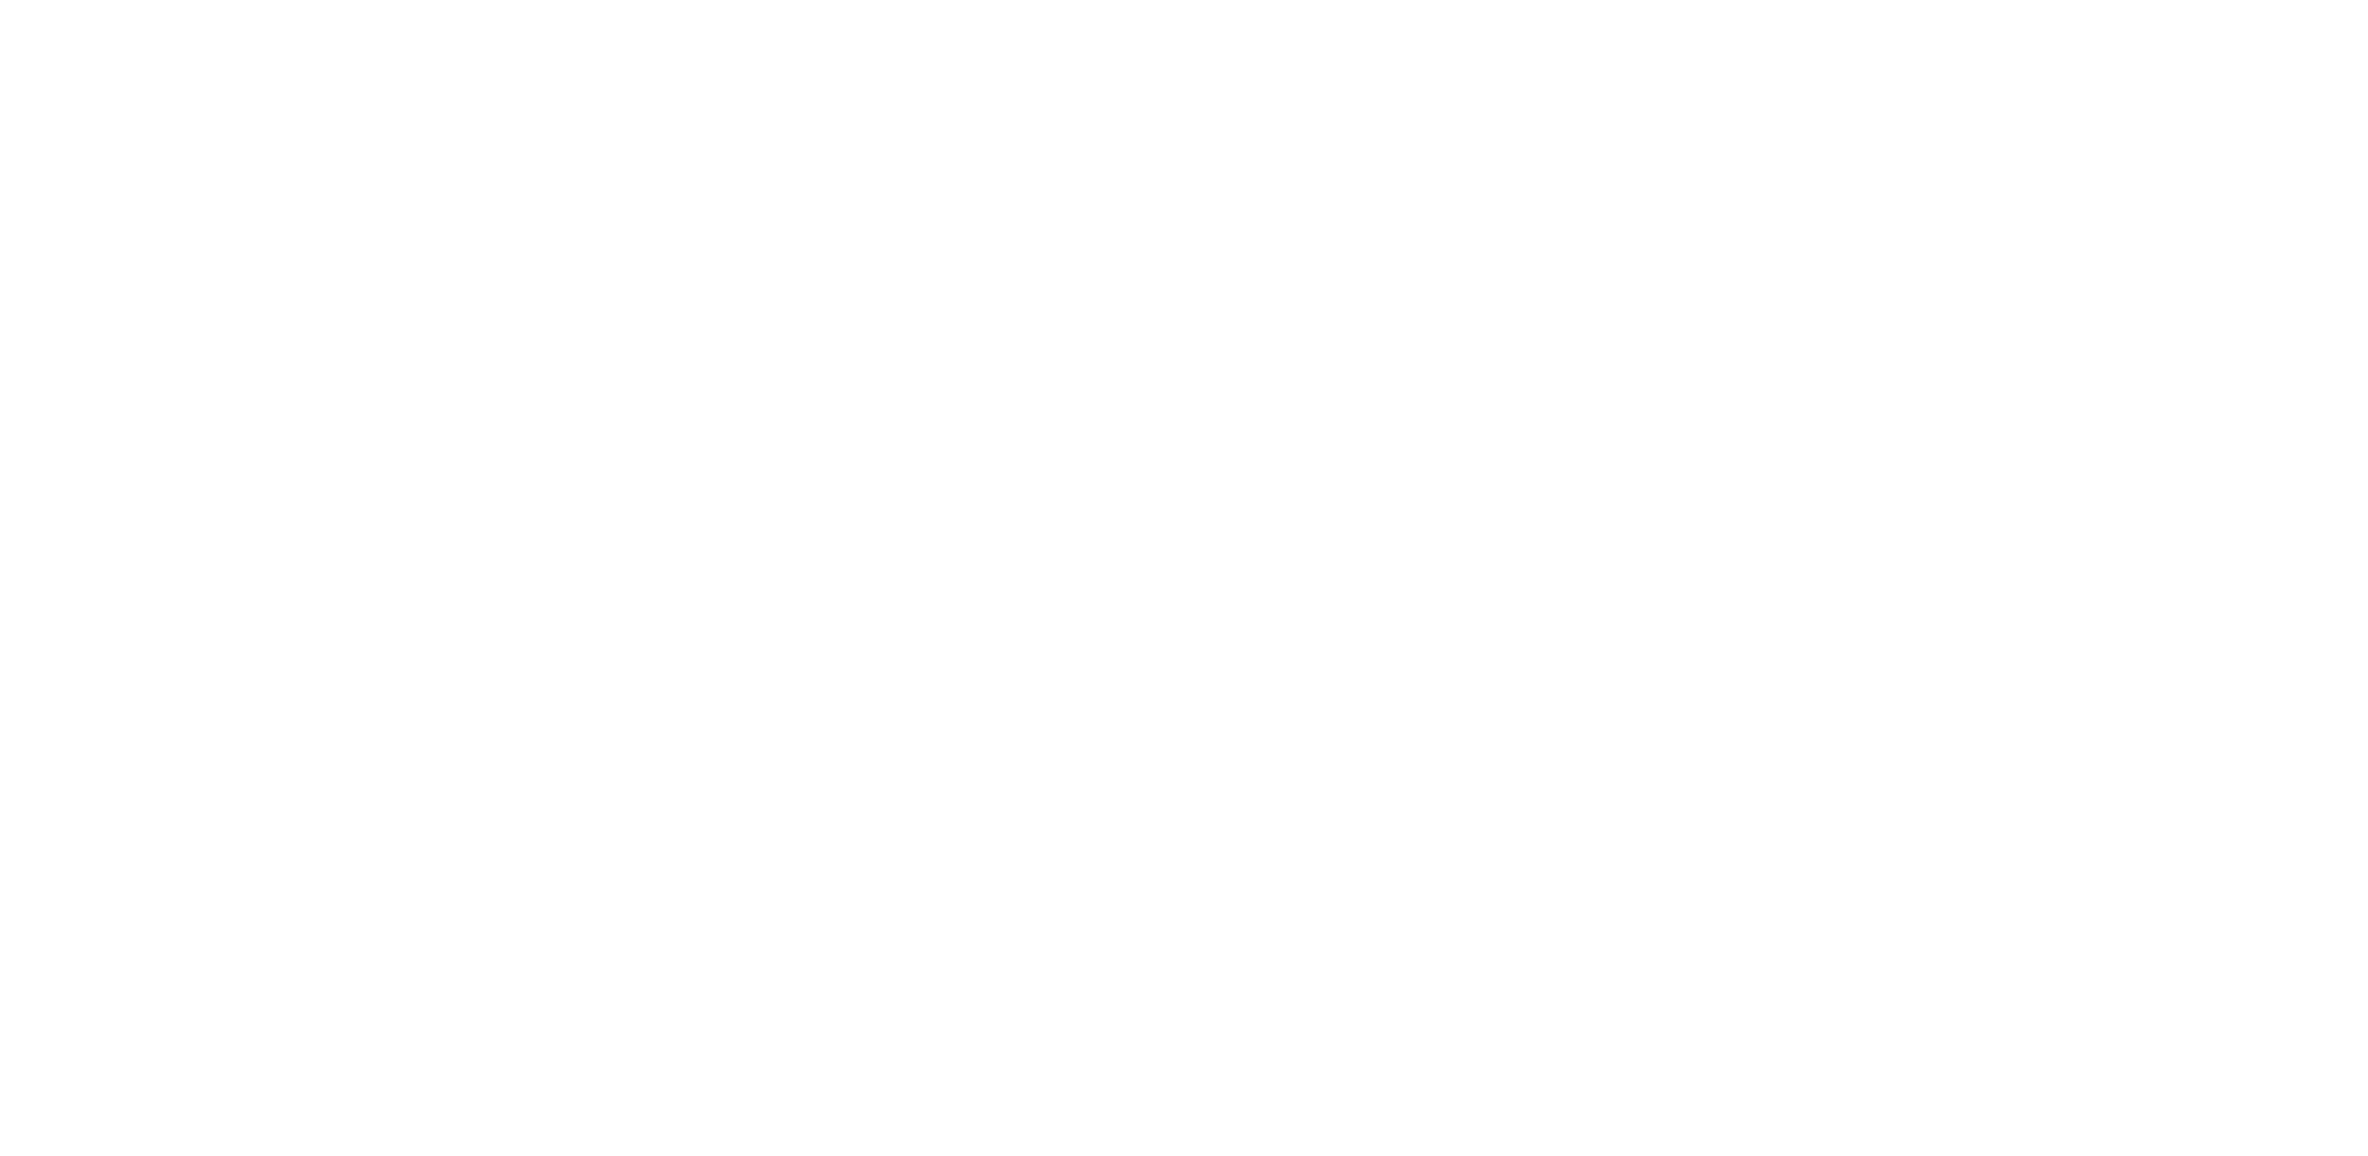 BARE ENTERTAINMENT WHITE.png